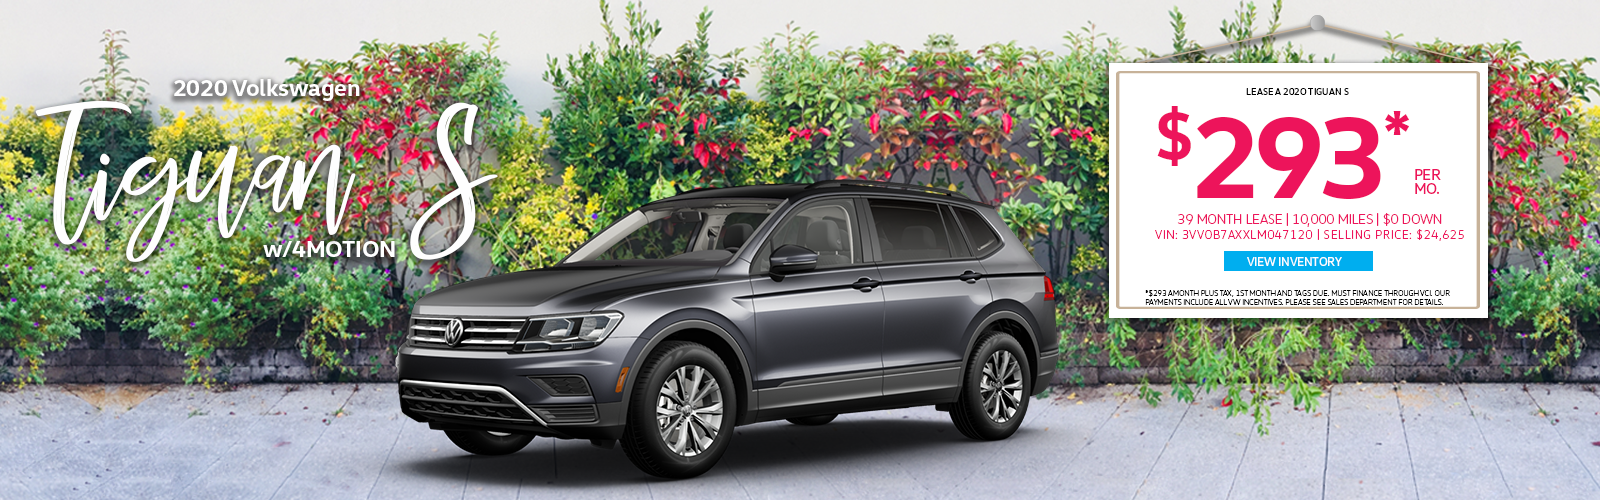 Tiguan S with flower background